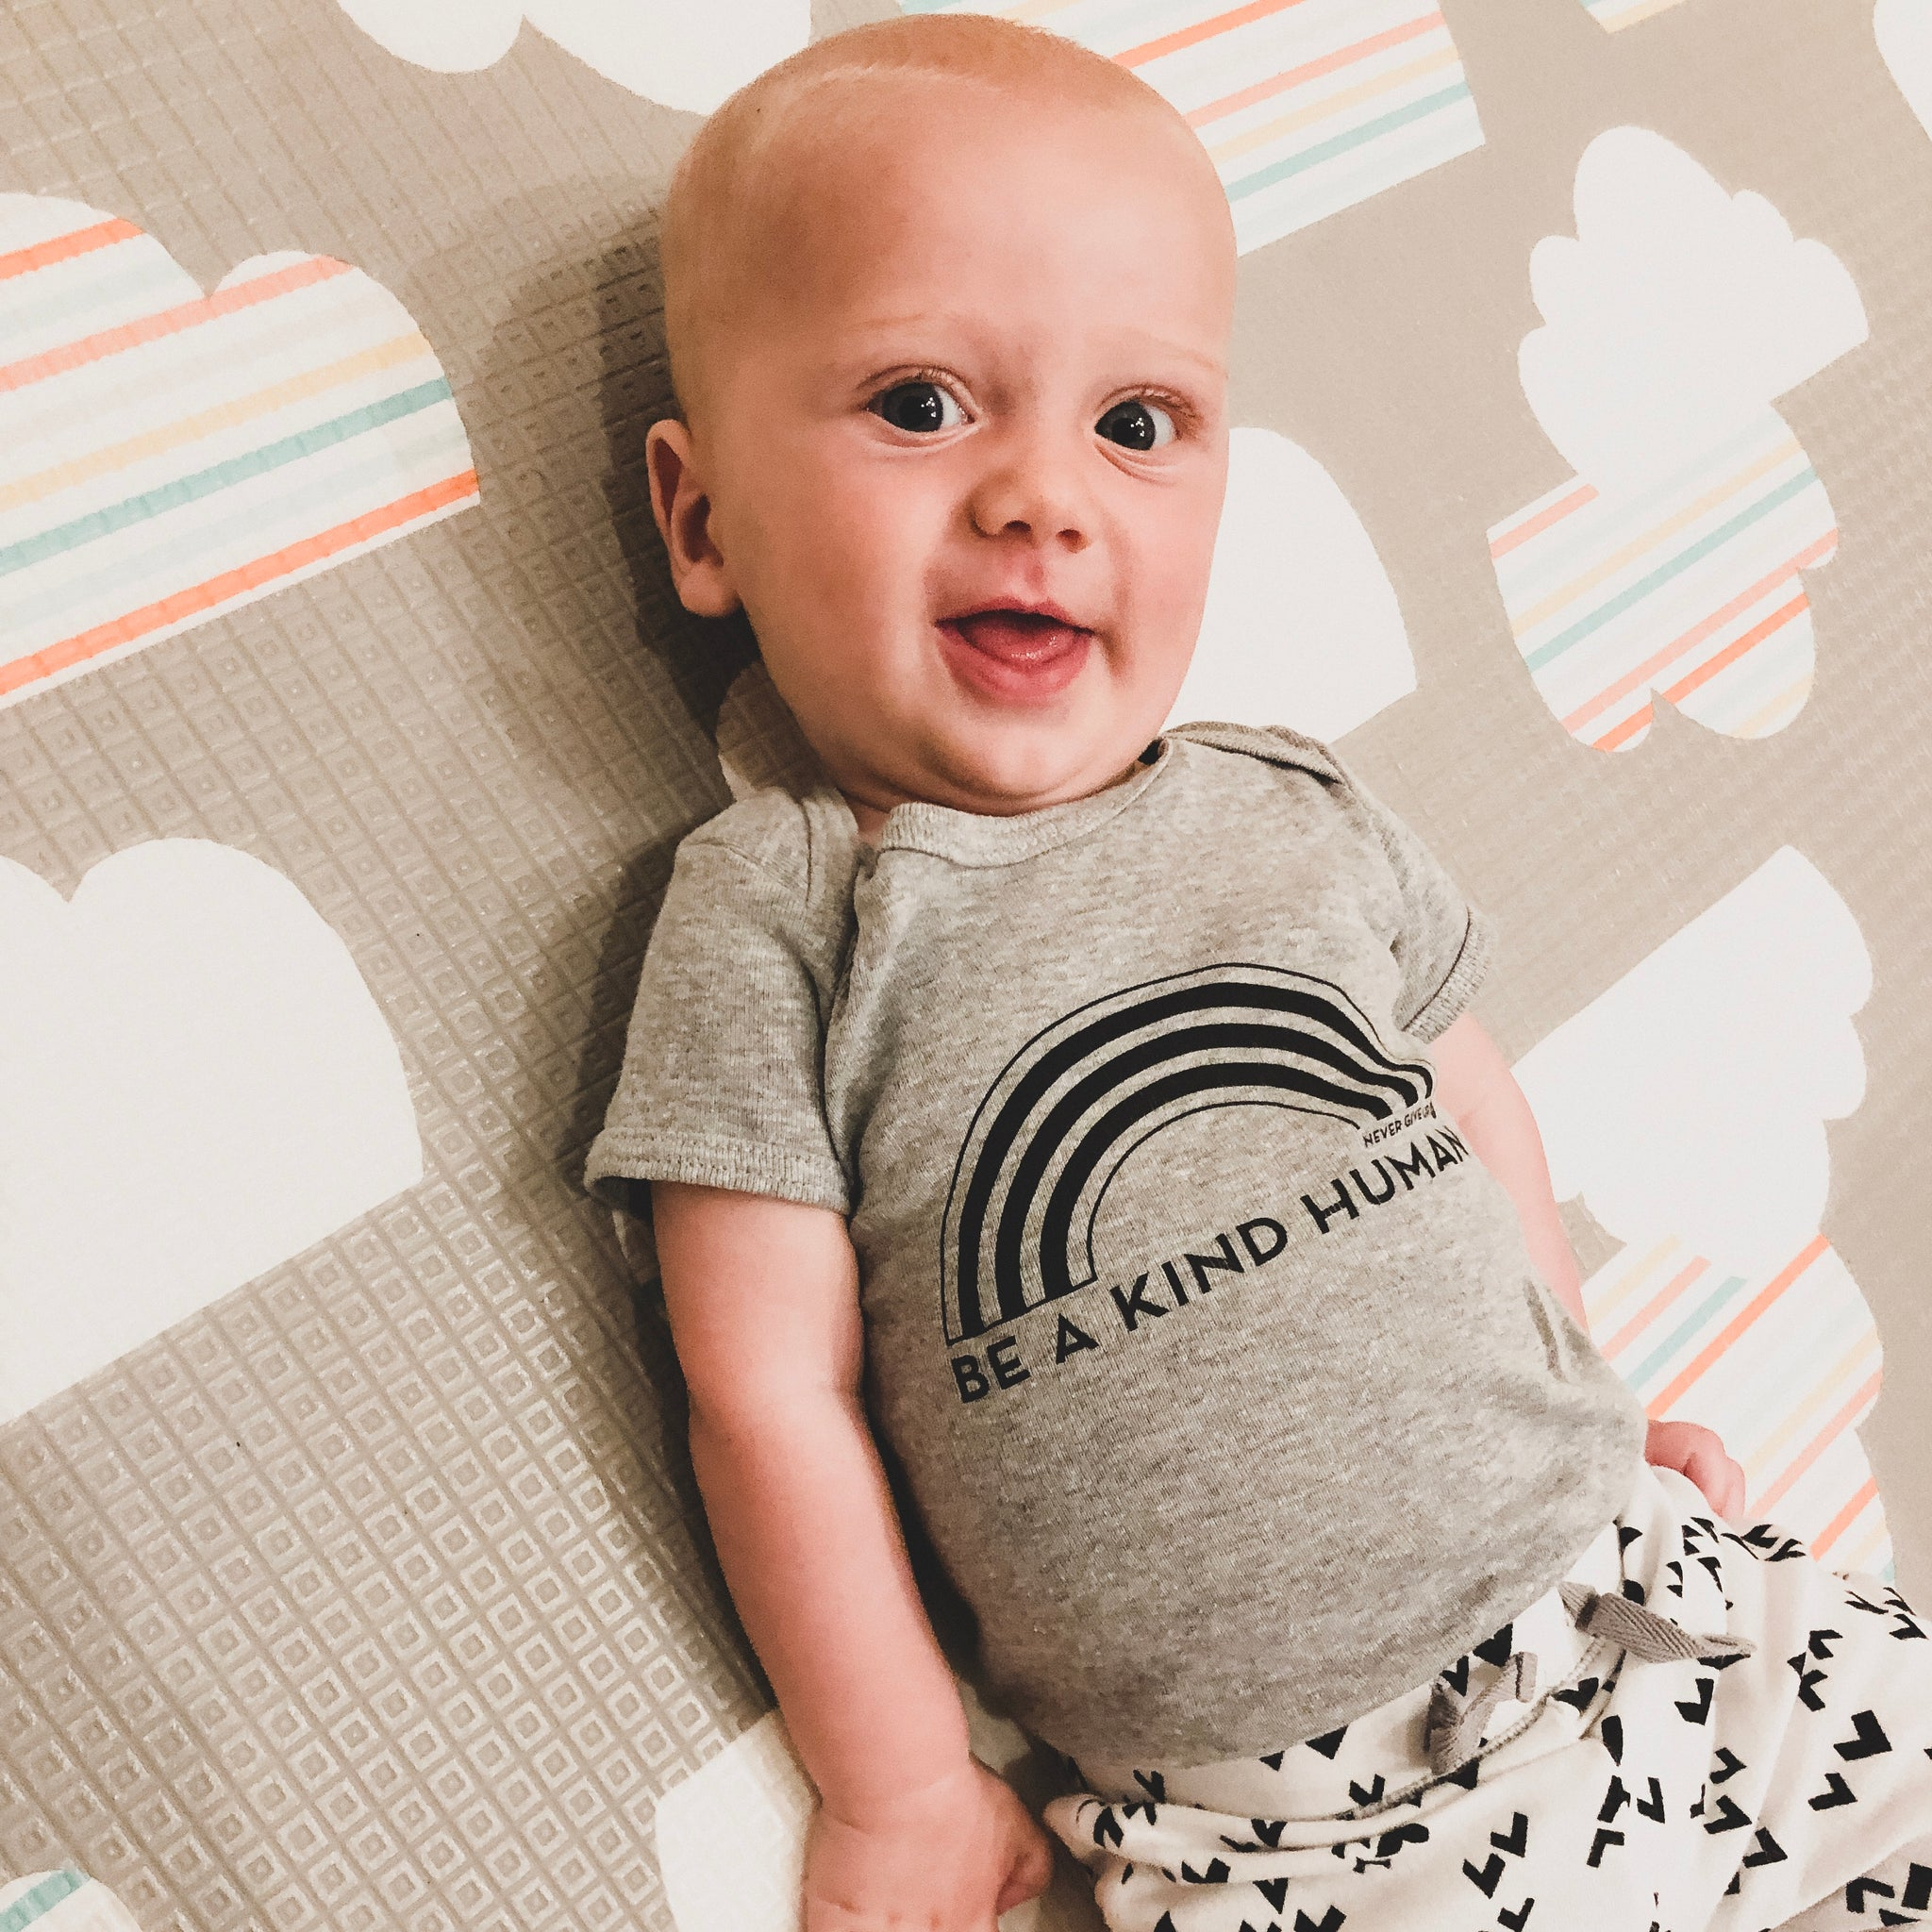 BE A KIND HUMAN BABY ONESIE